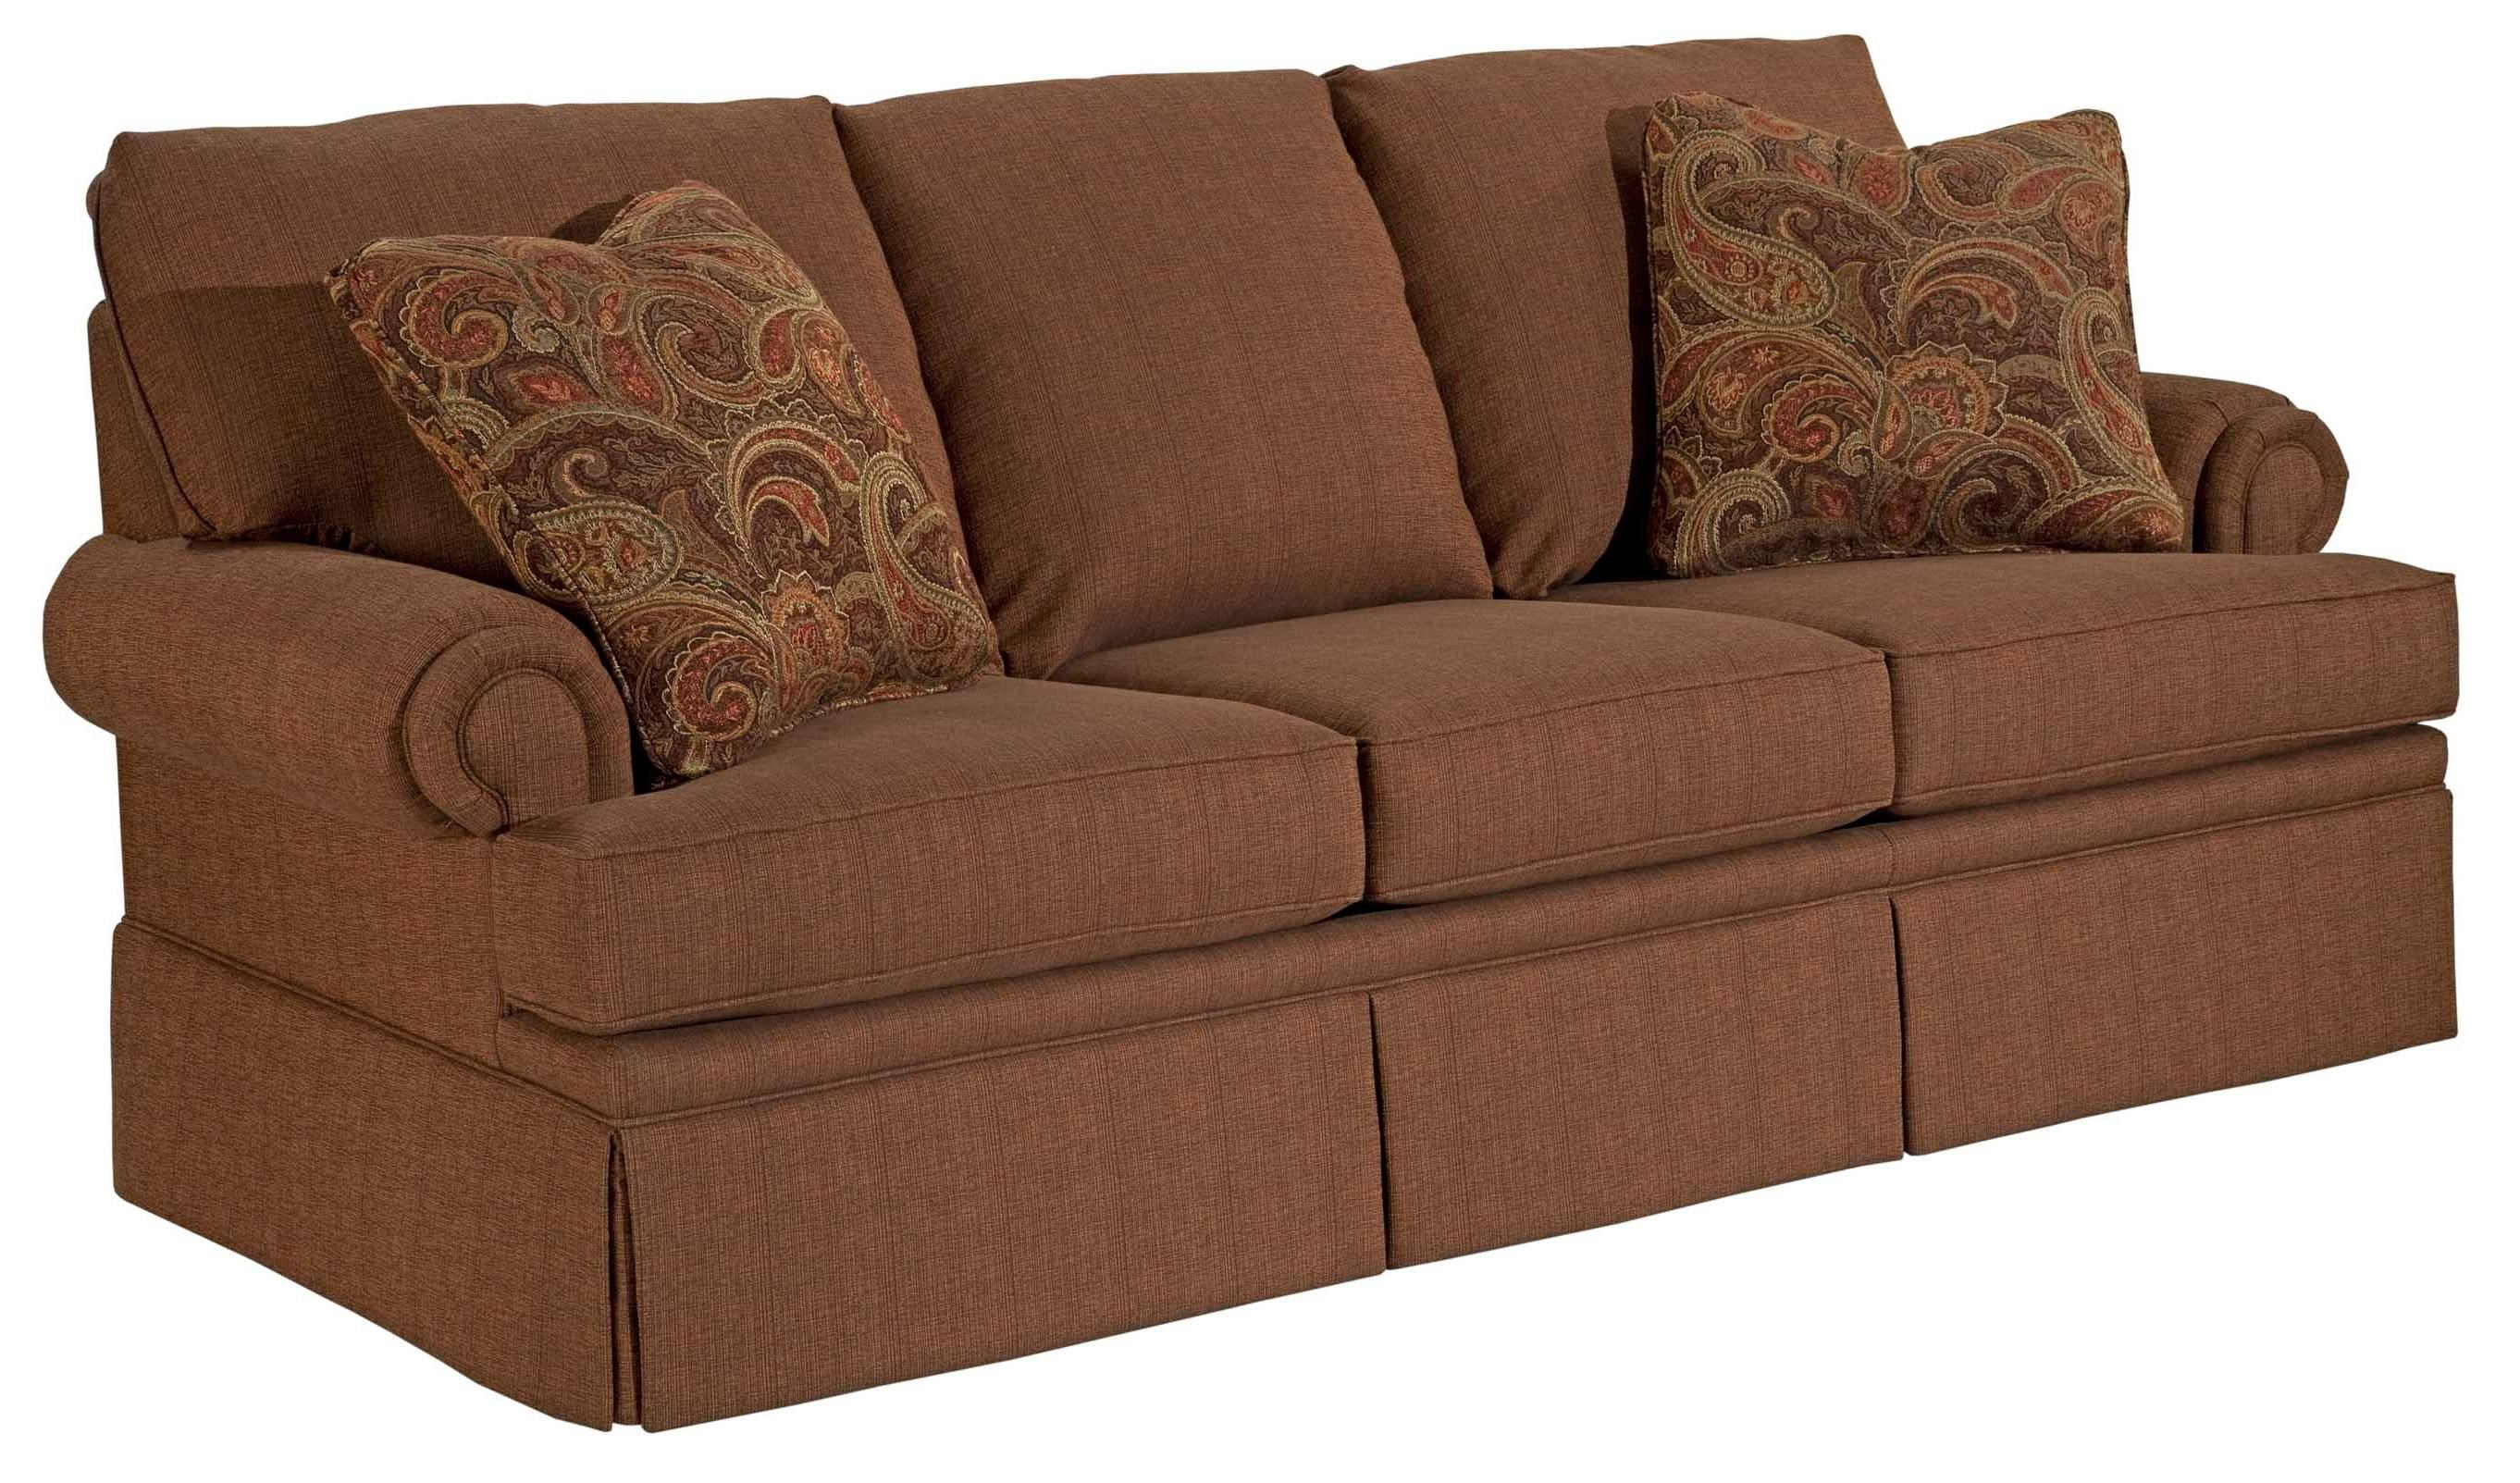 Broyhill Furniture Jenna Air Dream Sofa Sleeper With Queen Size Bed